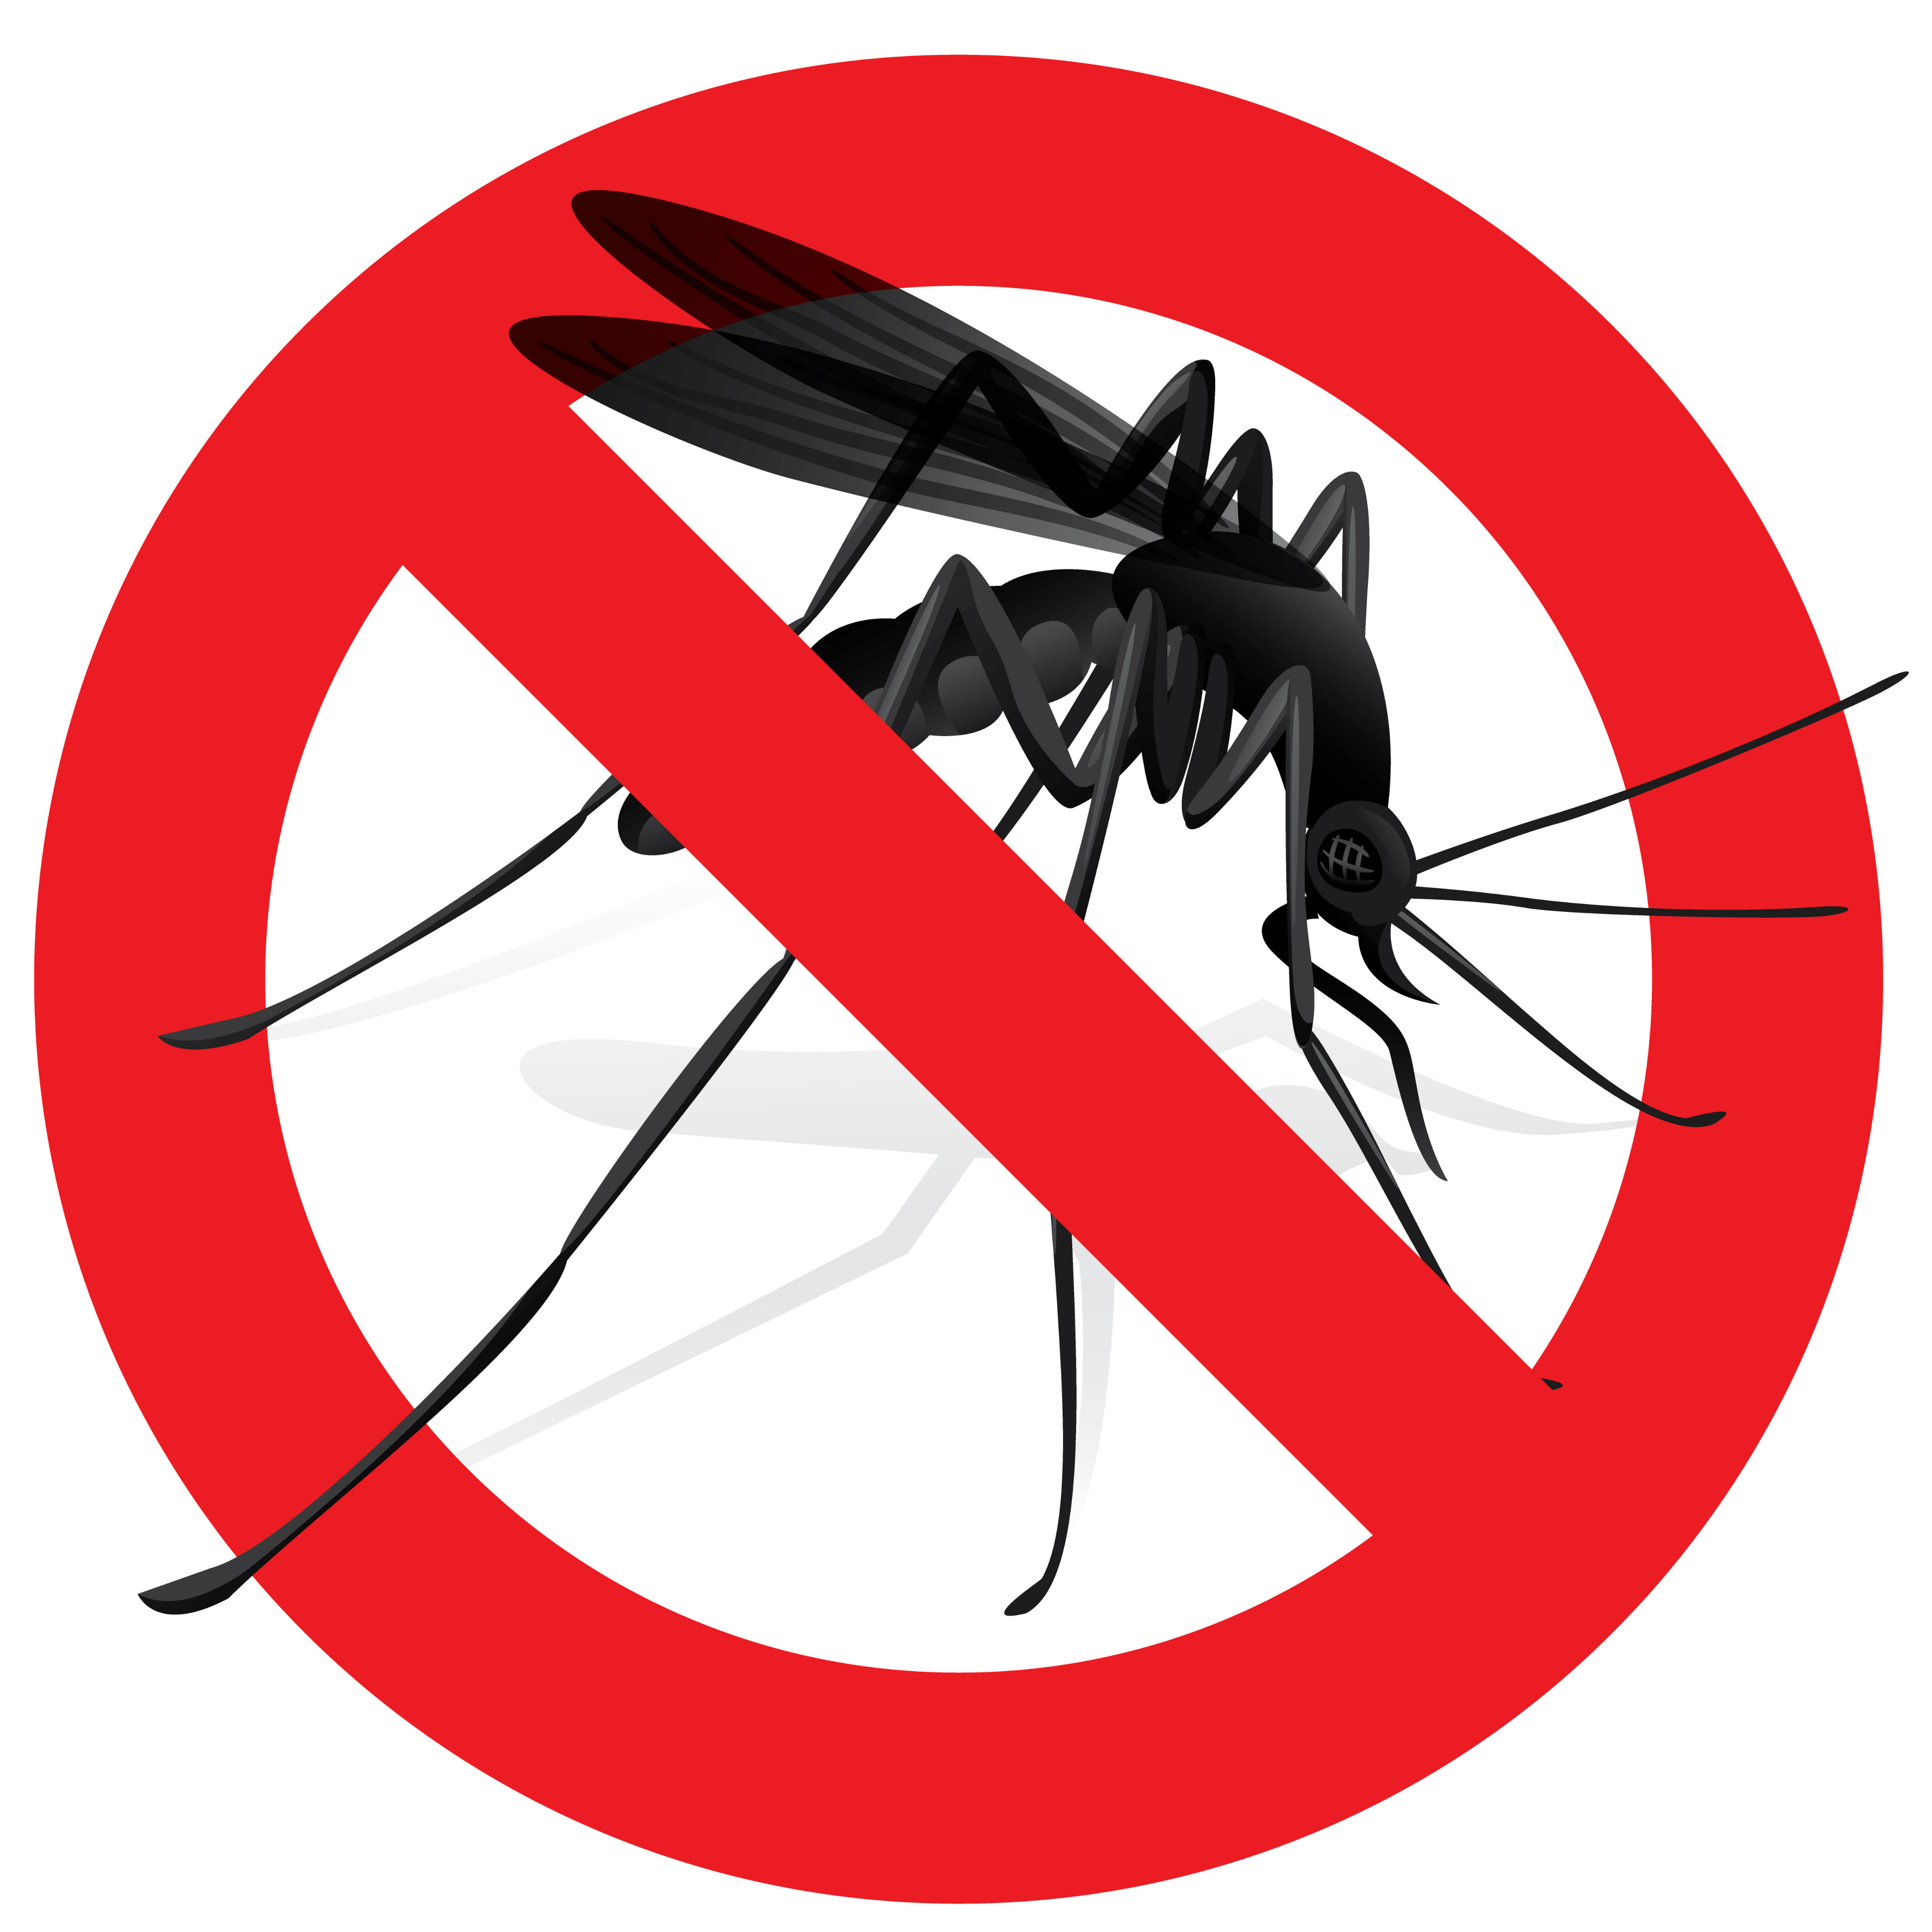 Mosquito clipart heartworm. Prevention and treatment of